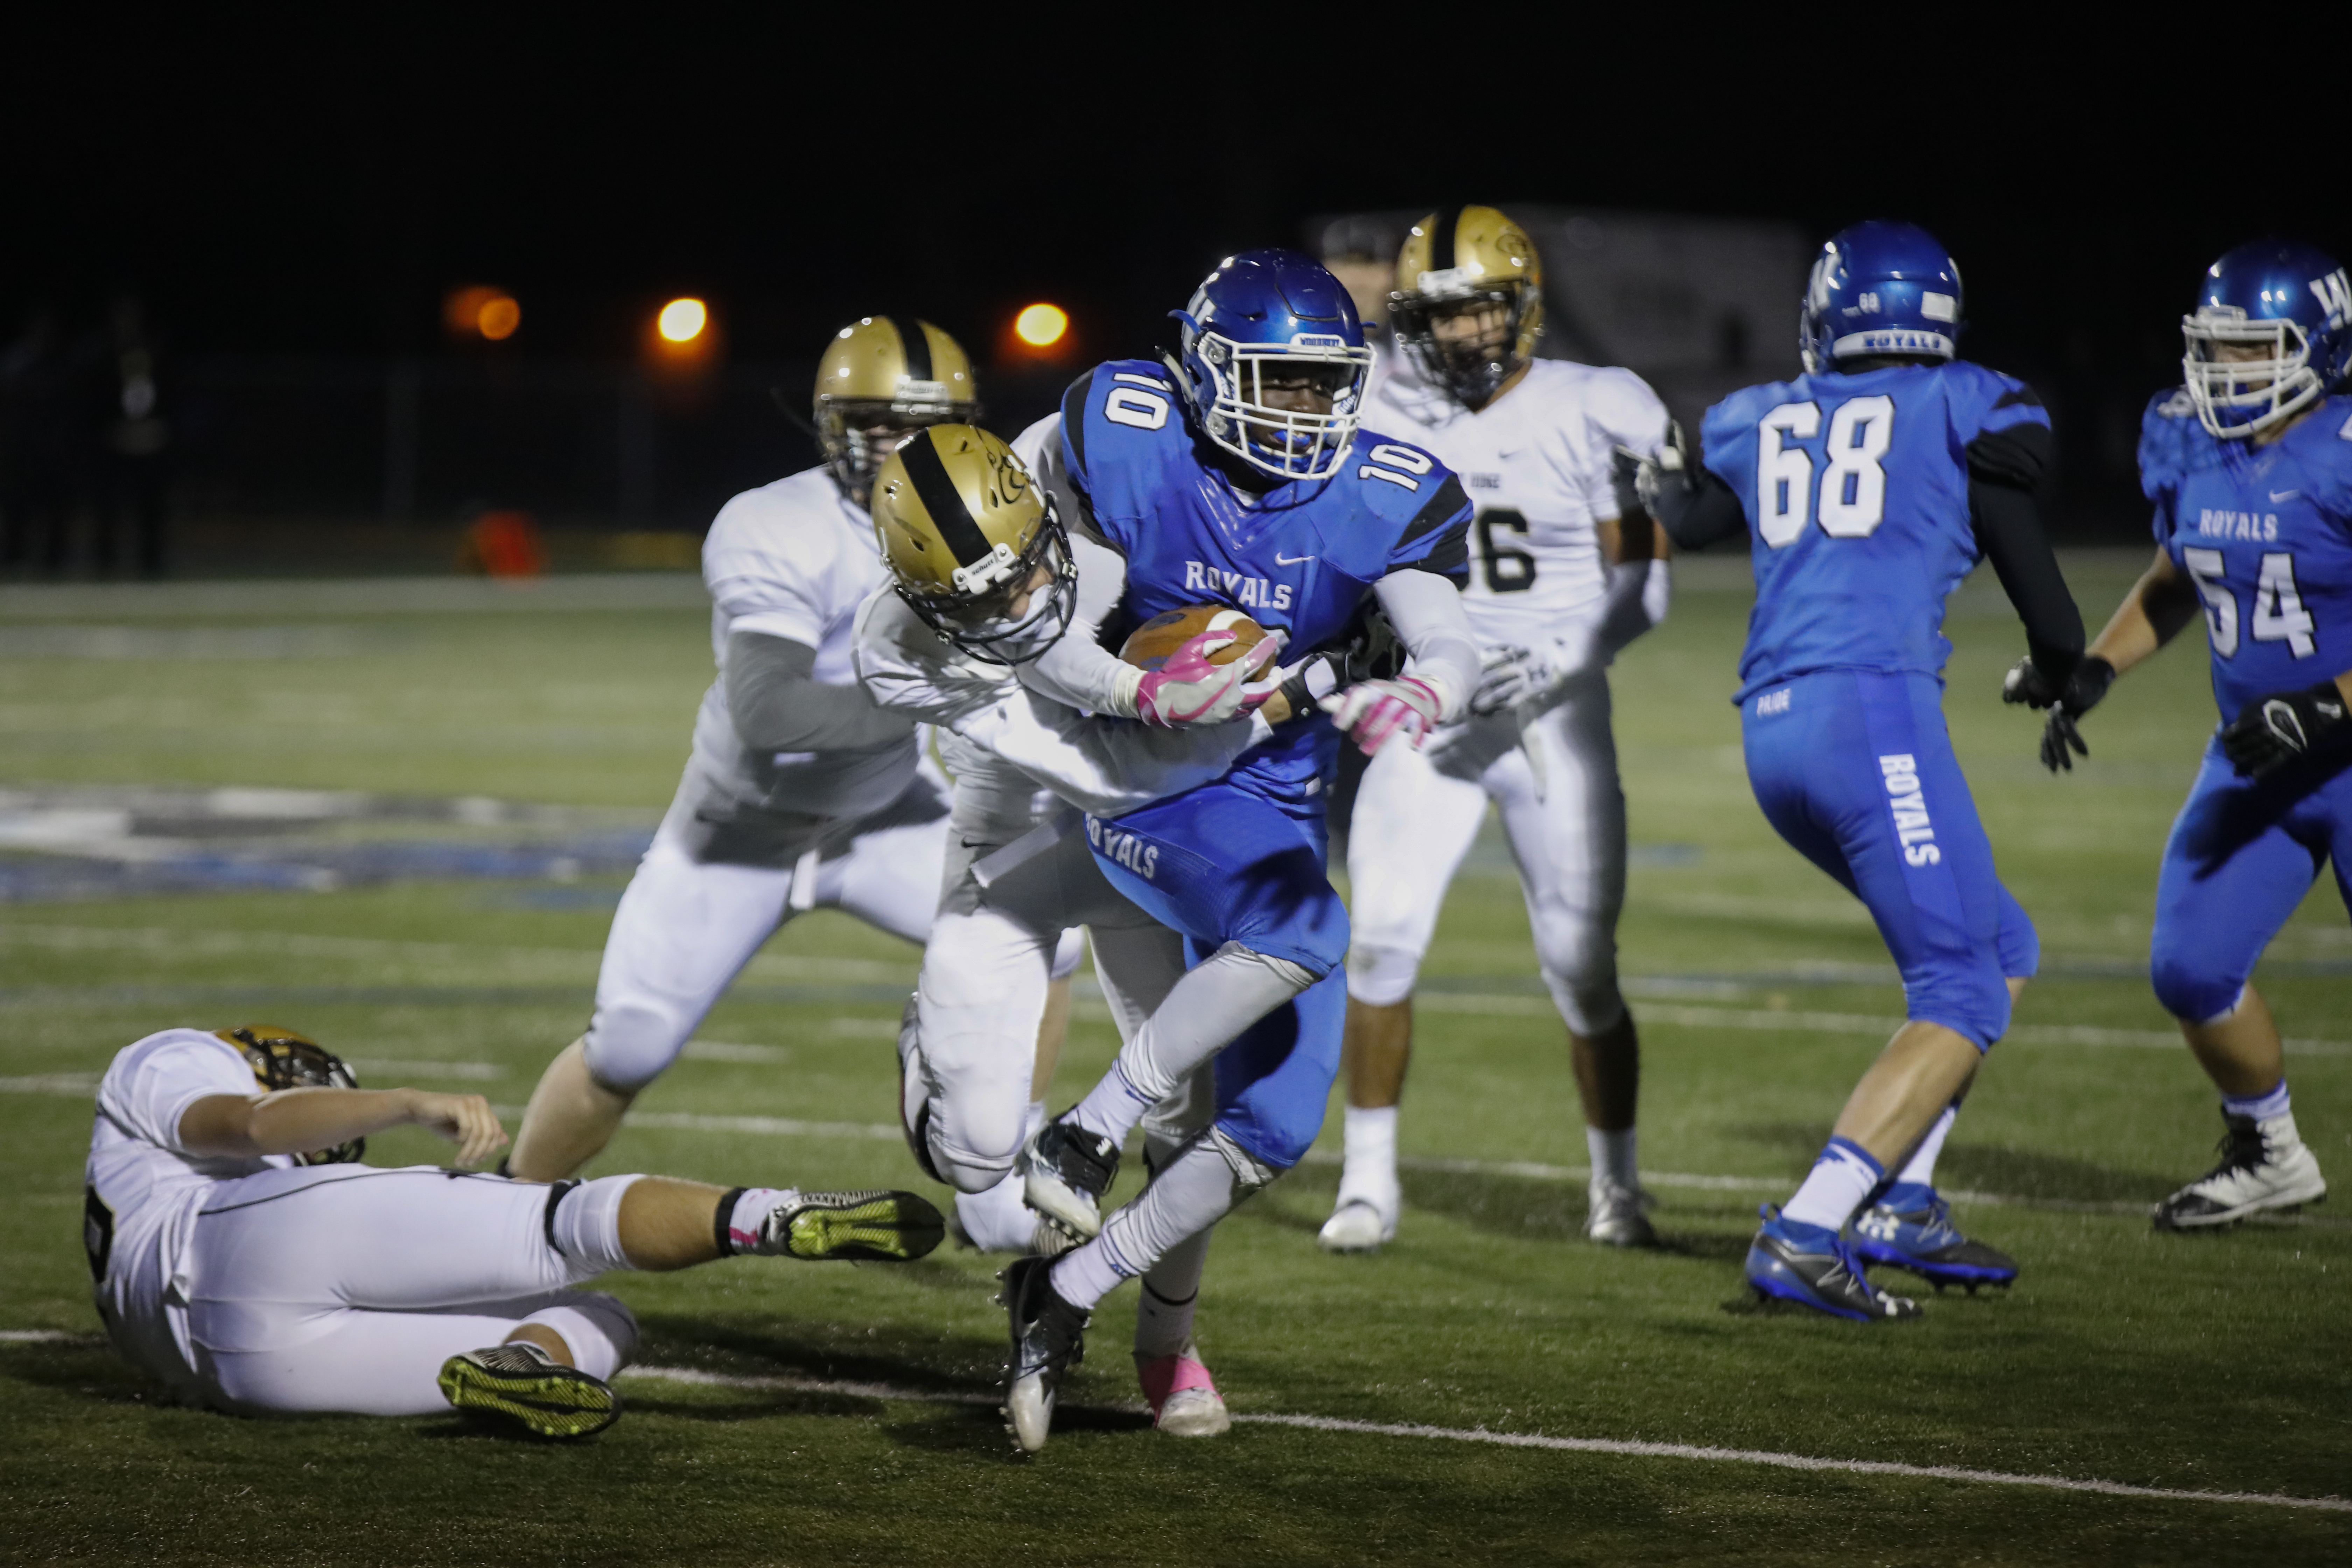 Woodbury senior running back Ricardo Twinawe (10) works for a first down. Twinawe scored three touchdowns to help the Royals upset East Ridge at home. Photo by Chris Juhn